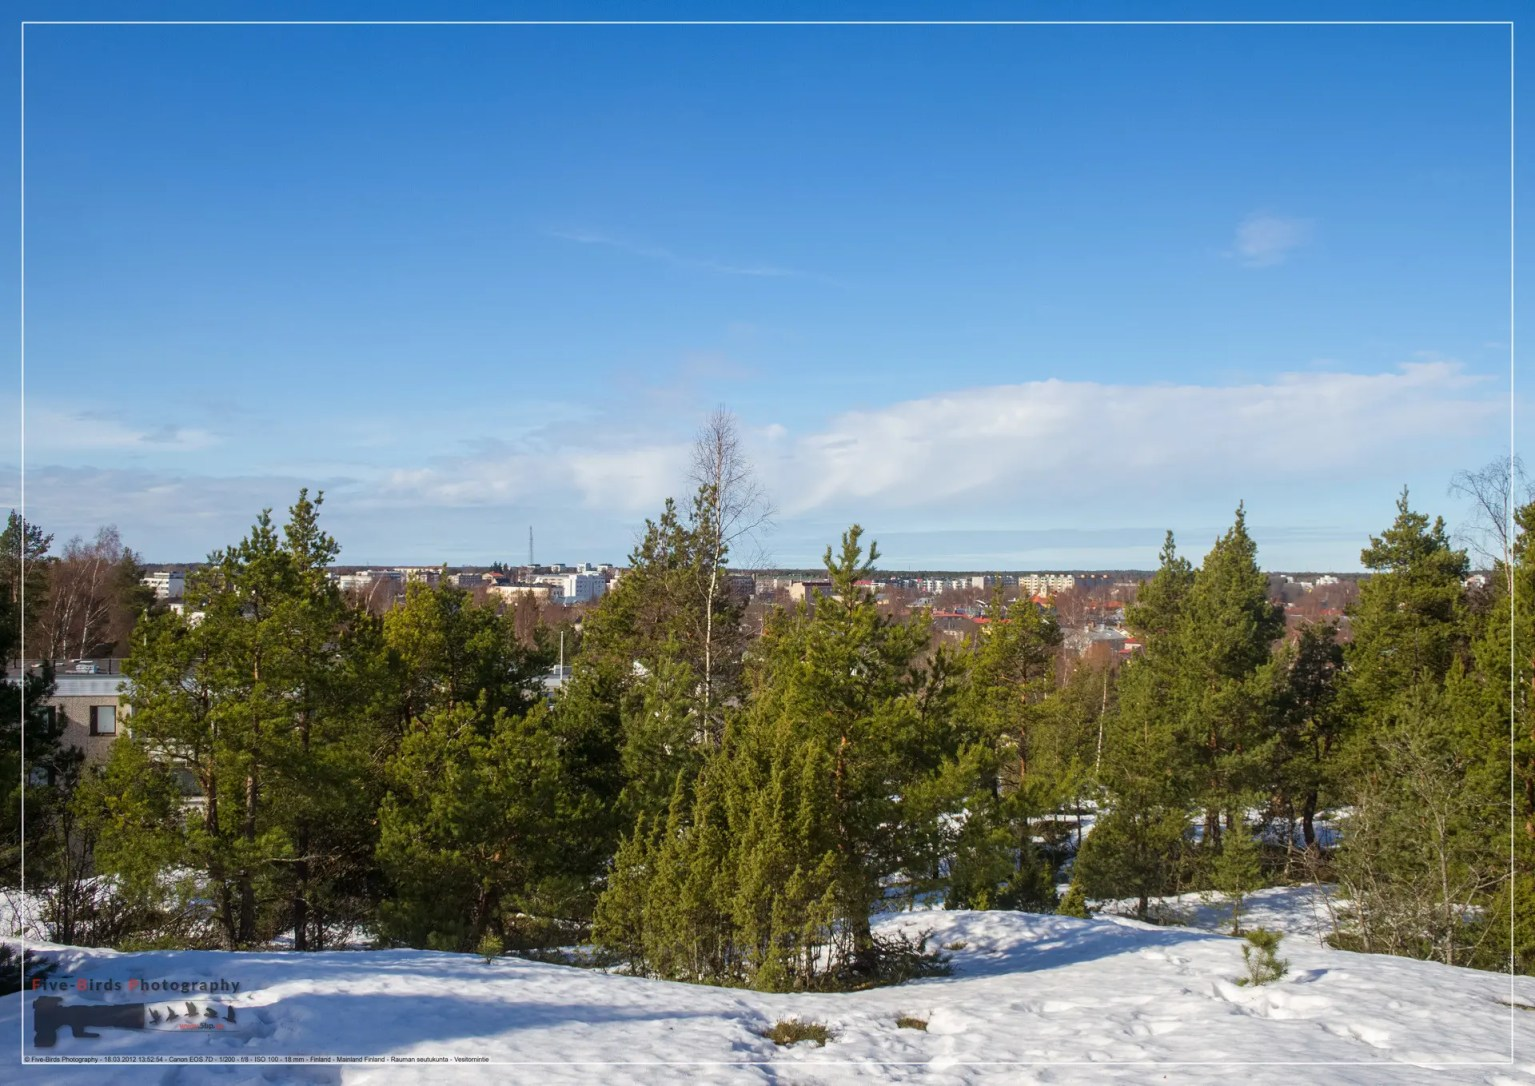 View over the Finnish city of Rauma from the lookout tower Rauma